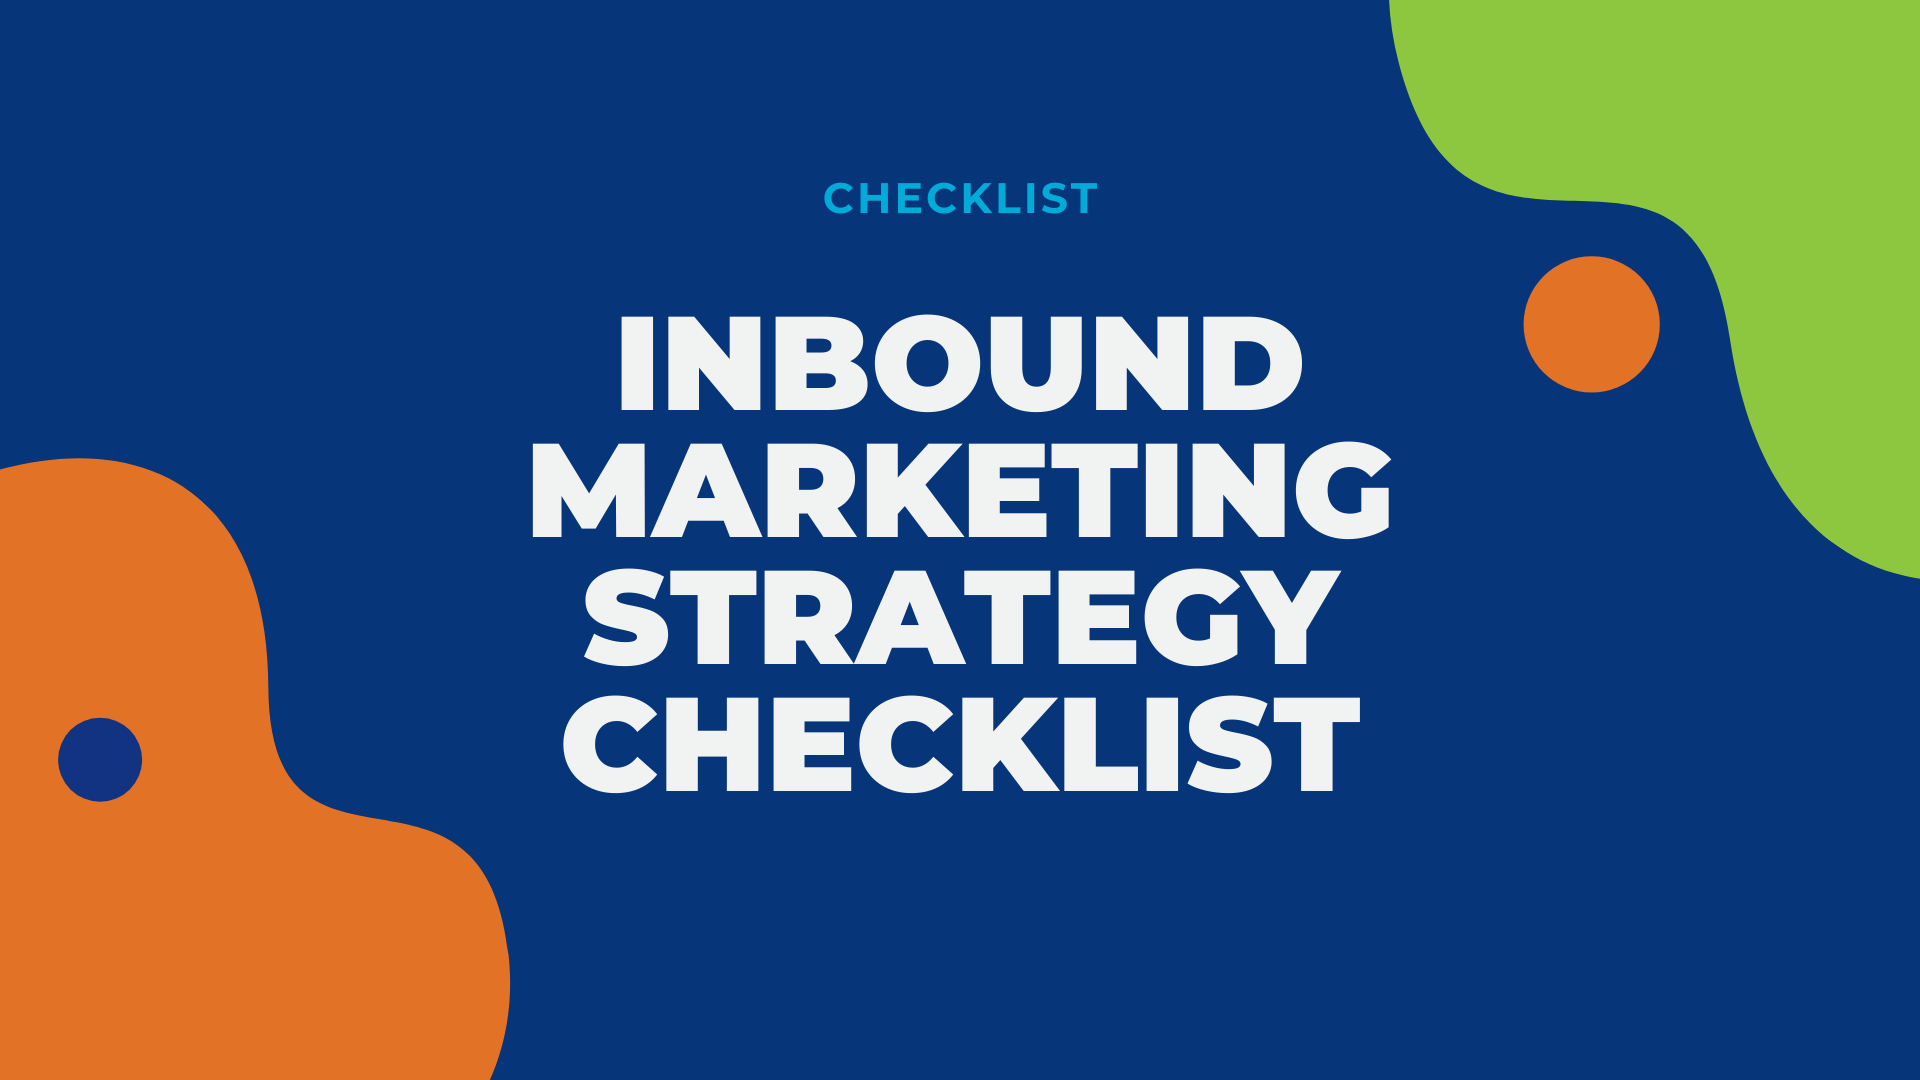 LG2 Website Resource - Inbound marketing strategy checklist